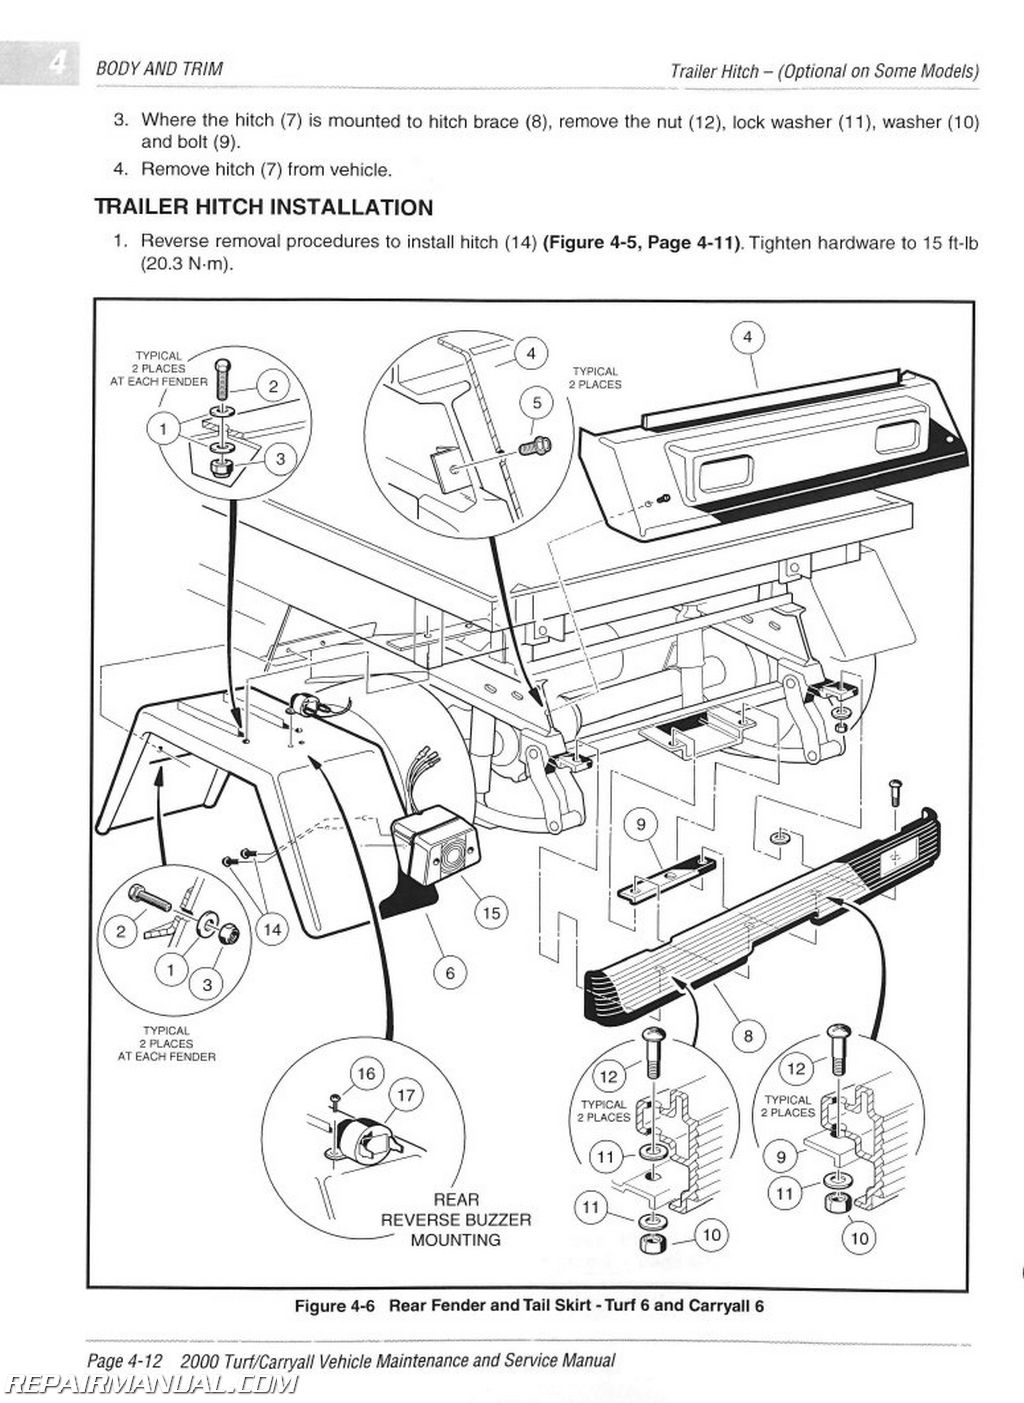 [DOC] Diagram Club Car Carryall 1 Wiring Diagram Ebook